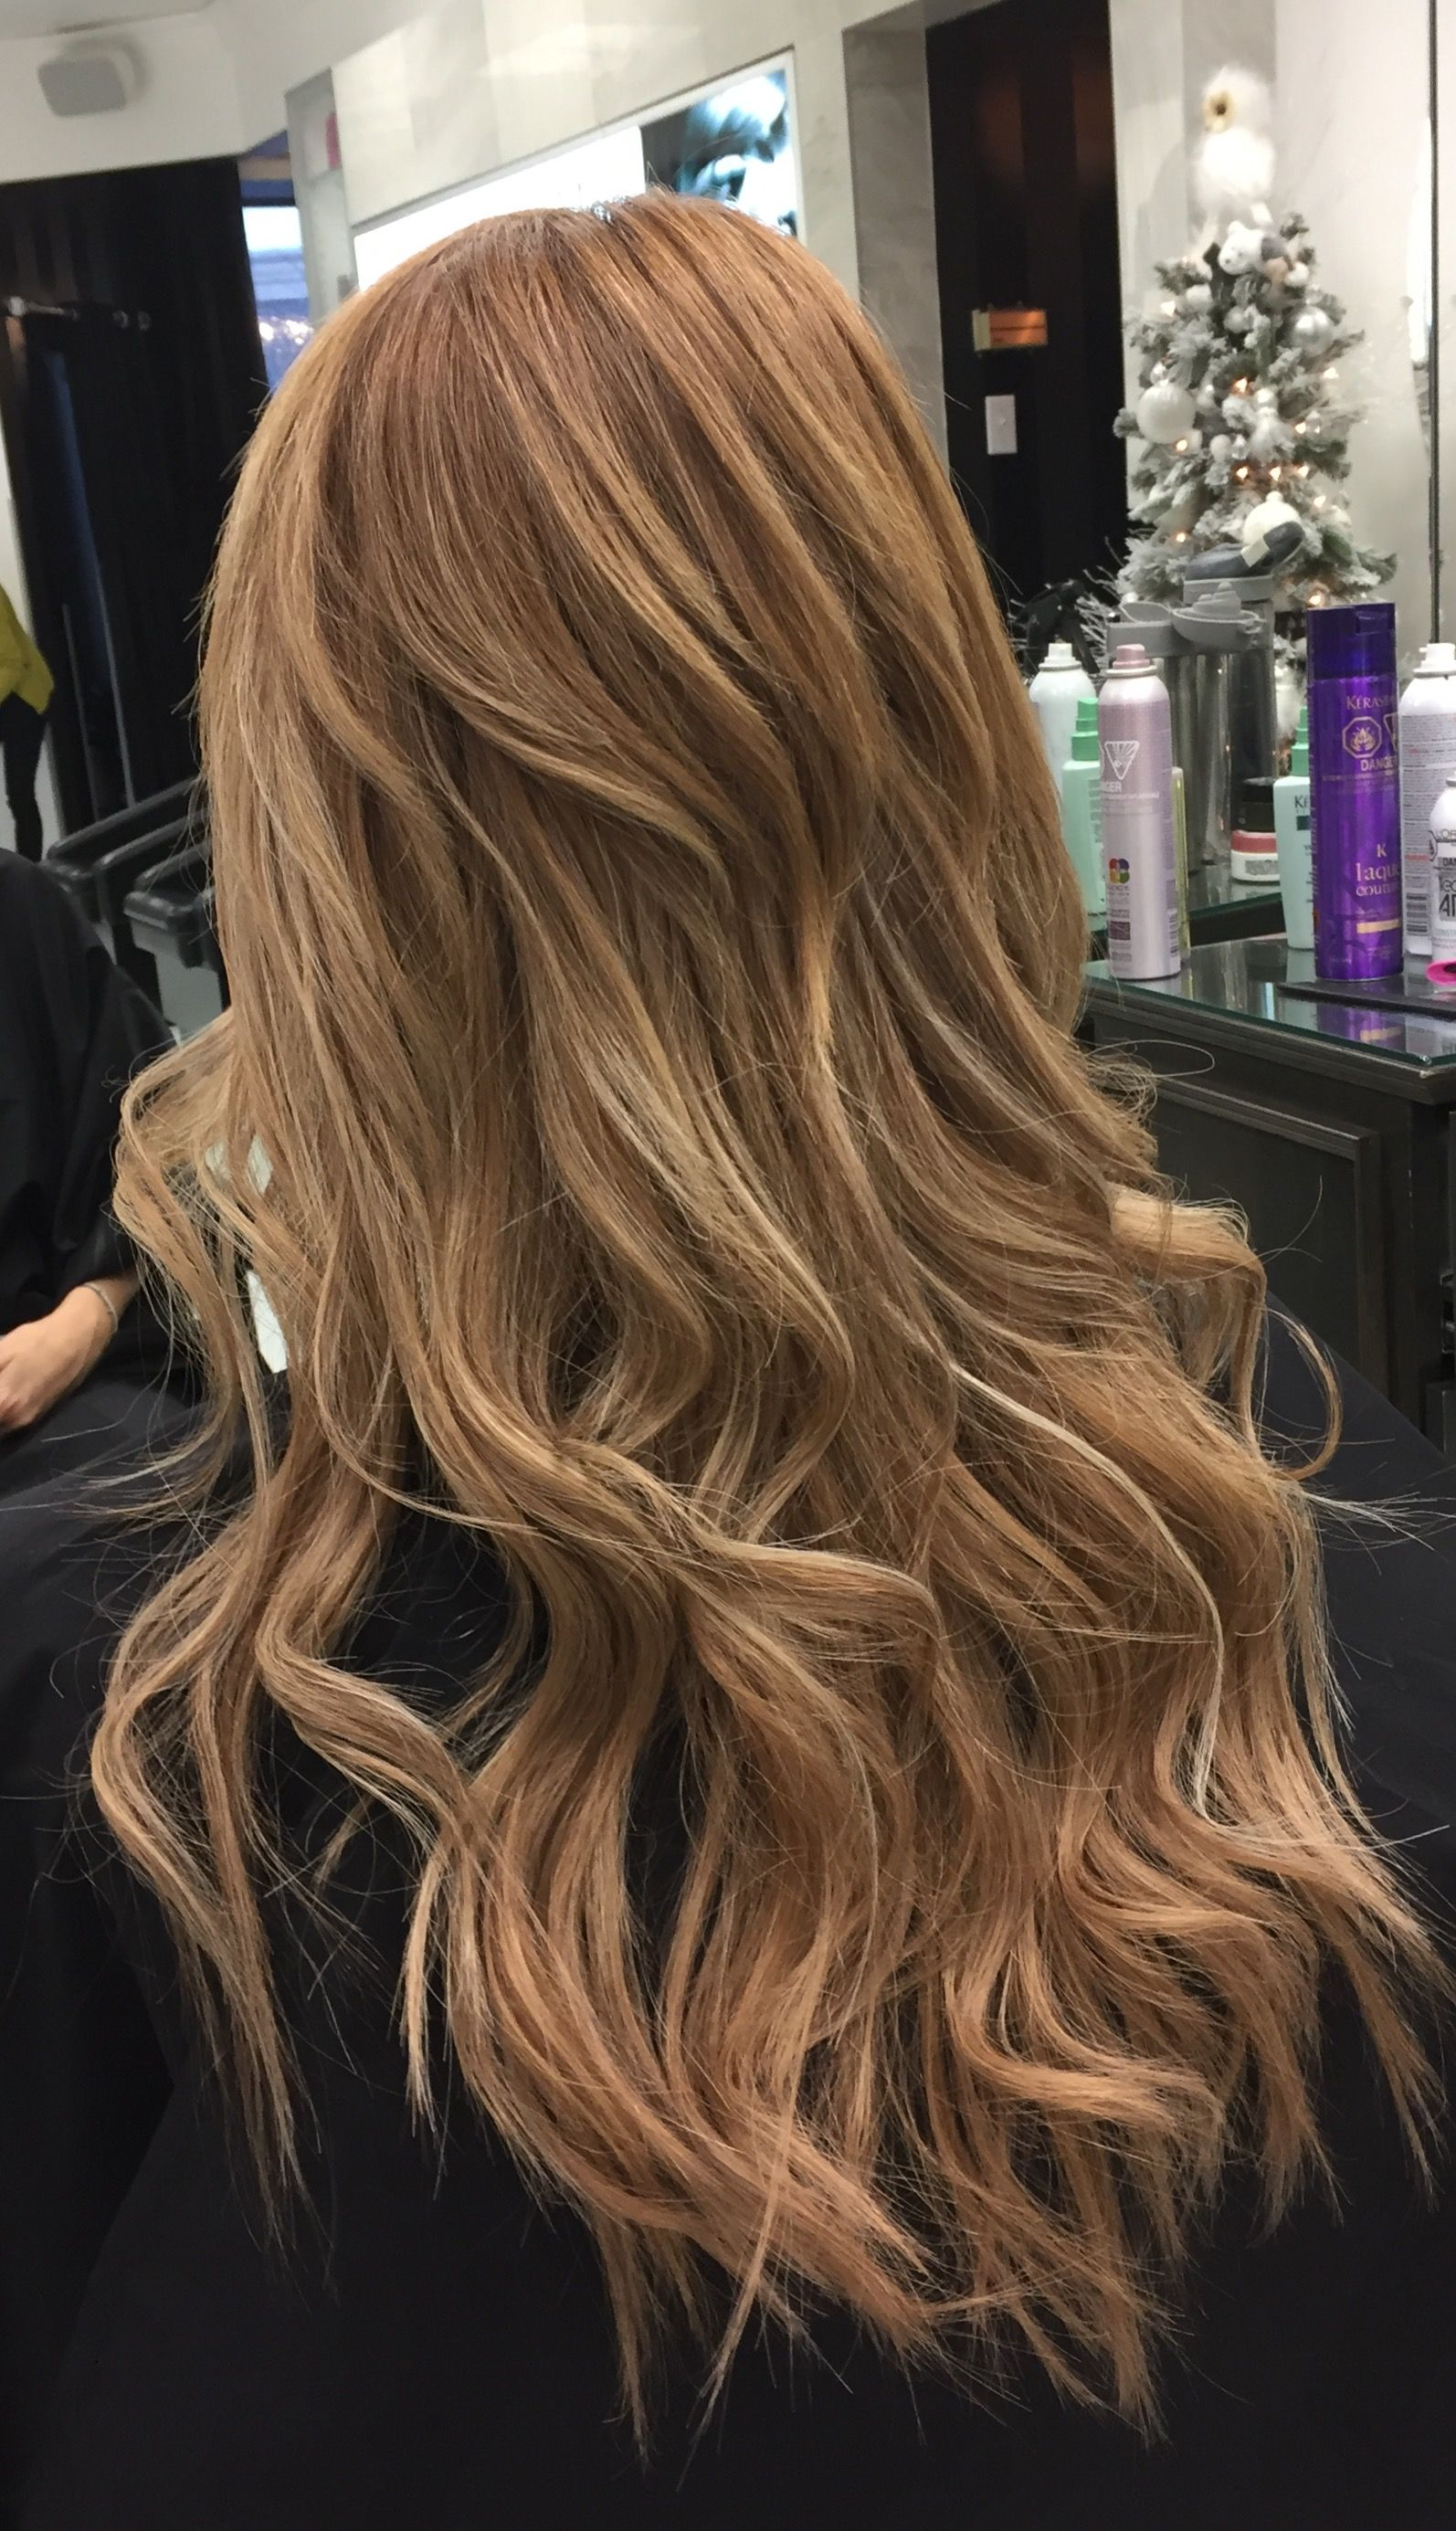 Zala hair extensions mix of dirty blond sunkissed highlights and zala hair extensions mix of dirty blond sunkissed highlights and carmel pmusecretfo Images